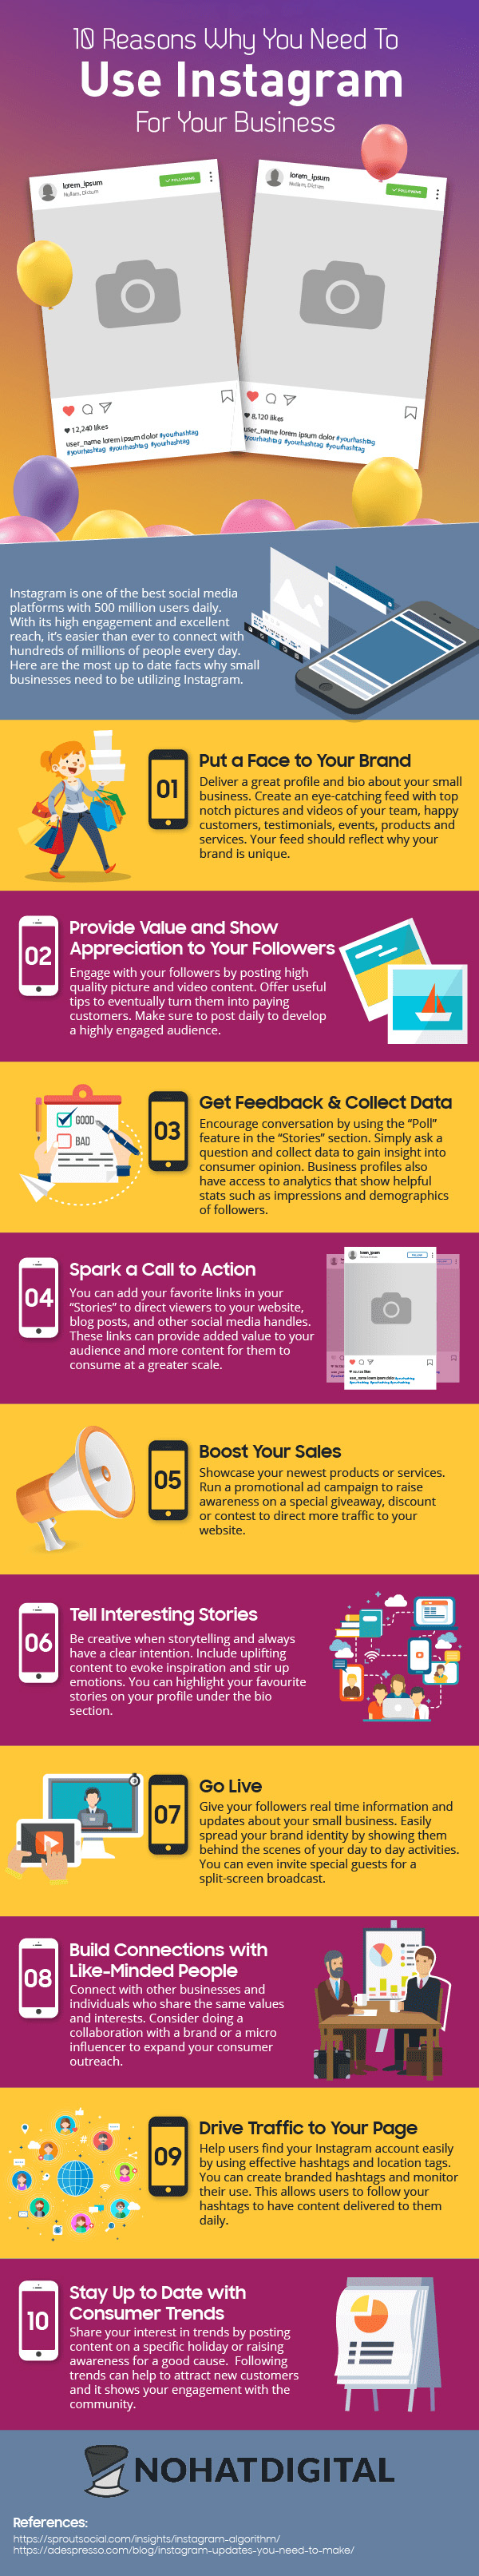 Why You Need To Use Instagram For Your Business [Infographic]